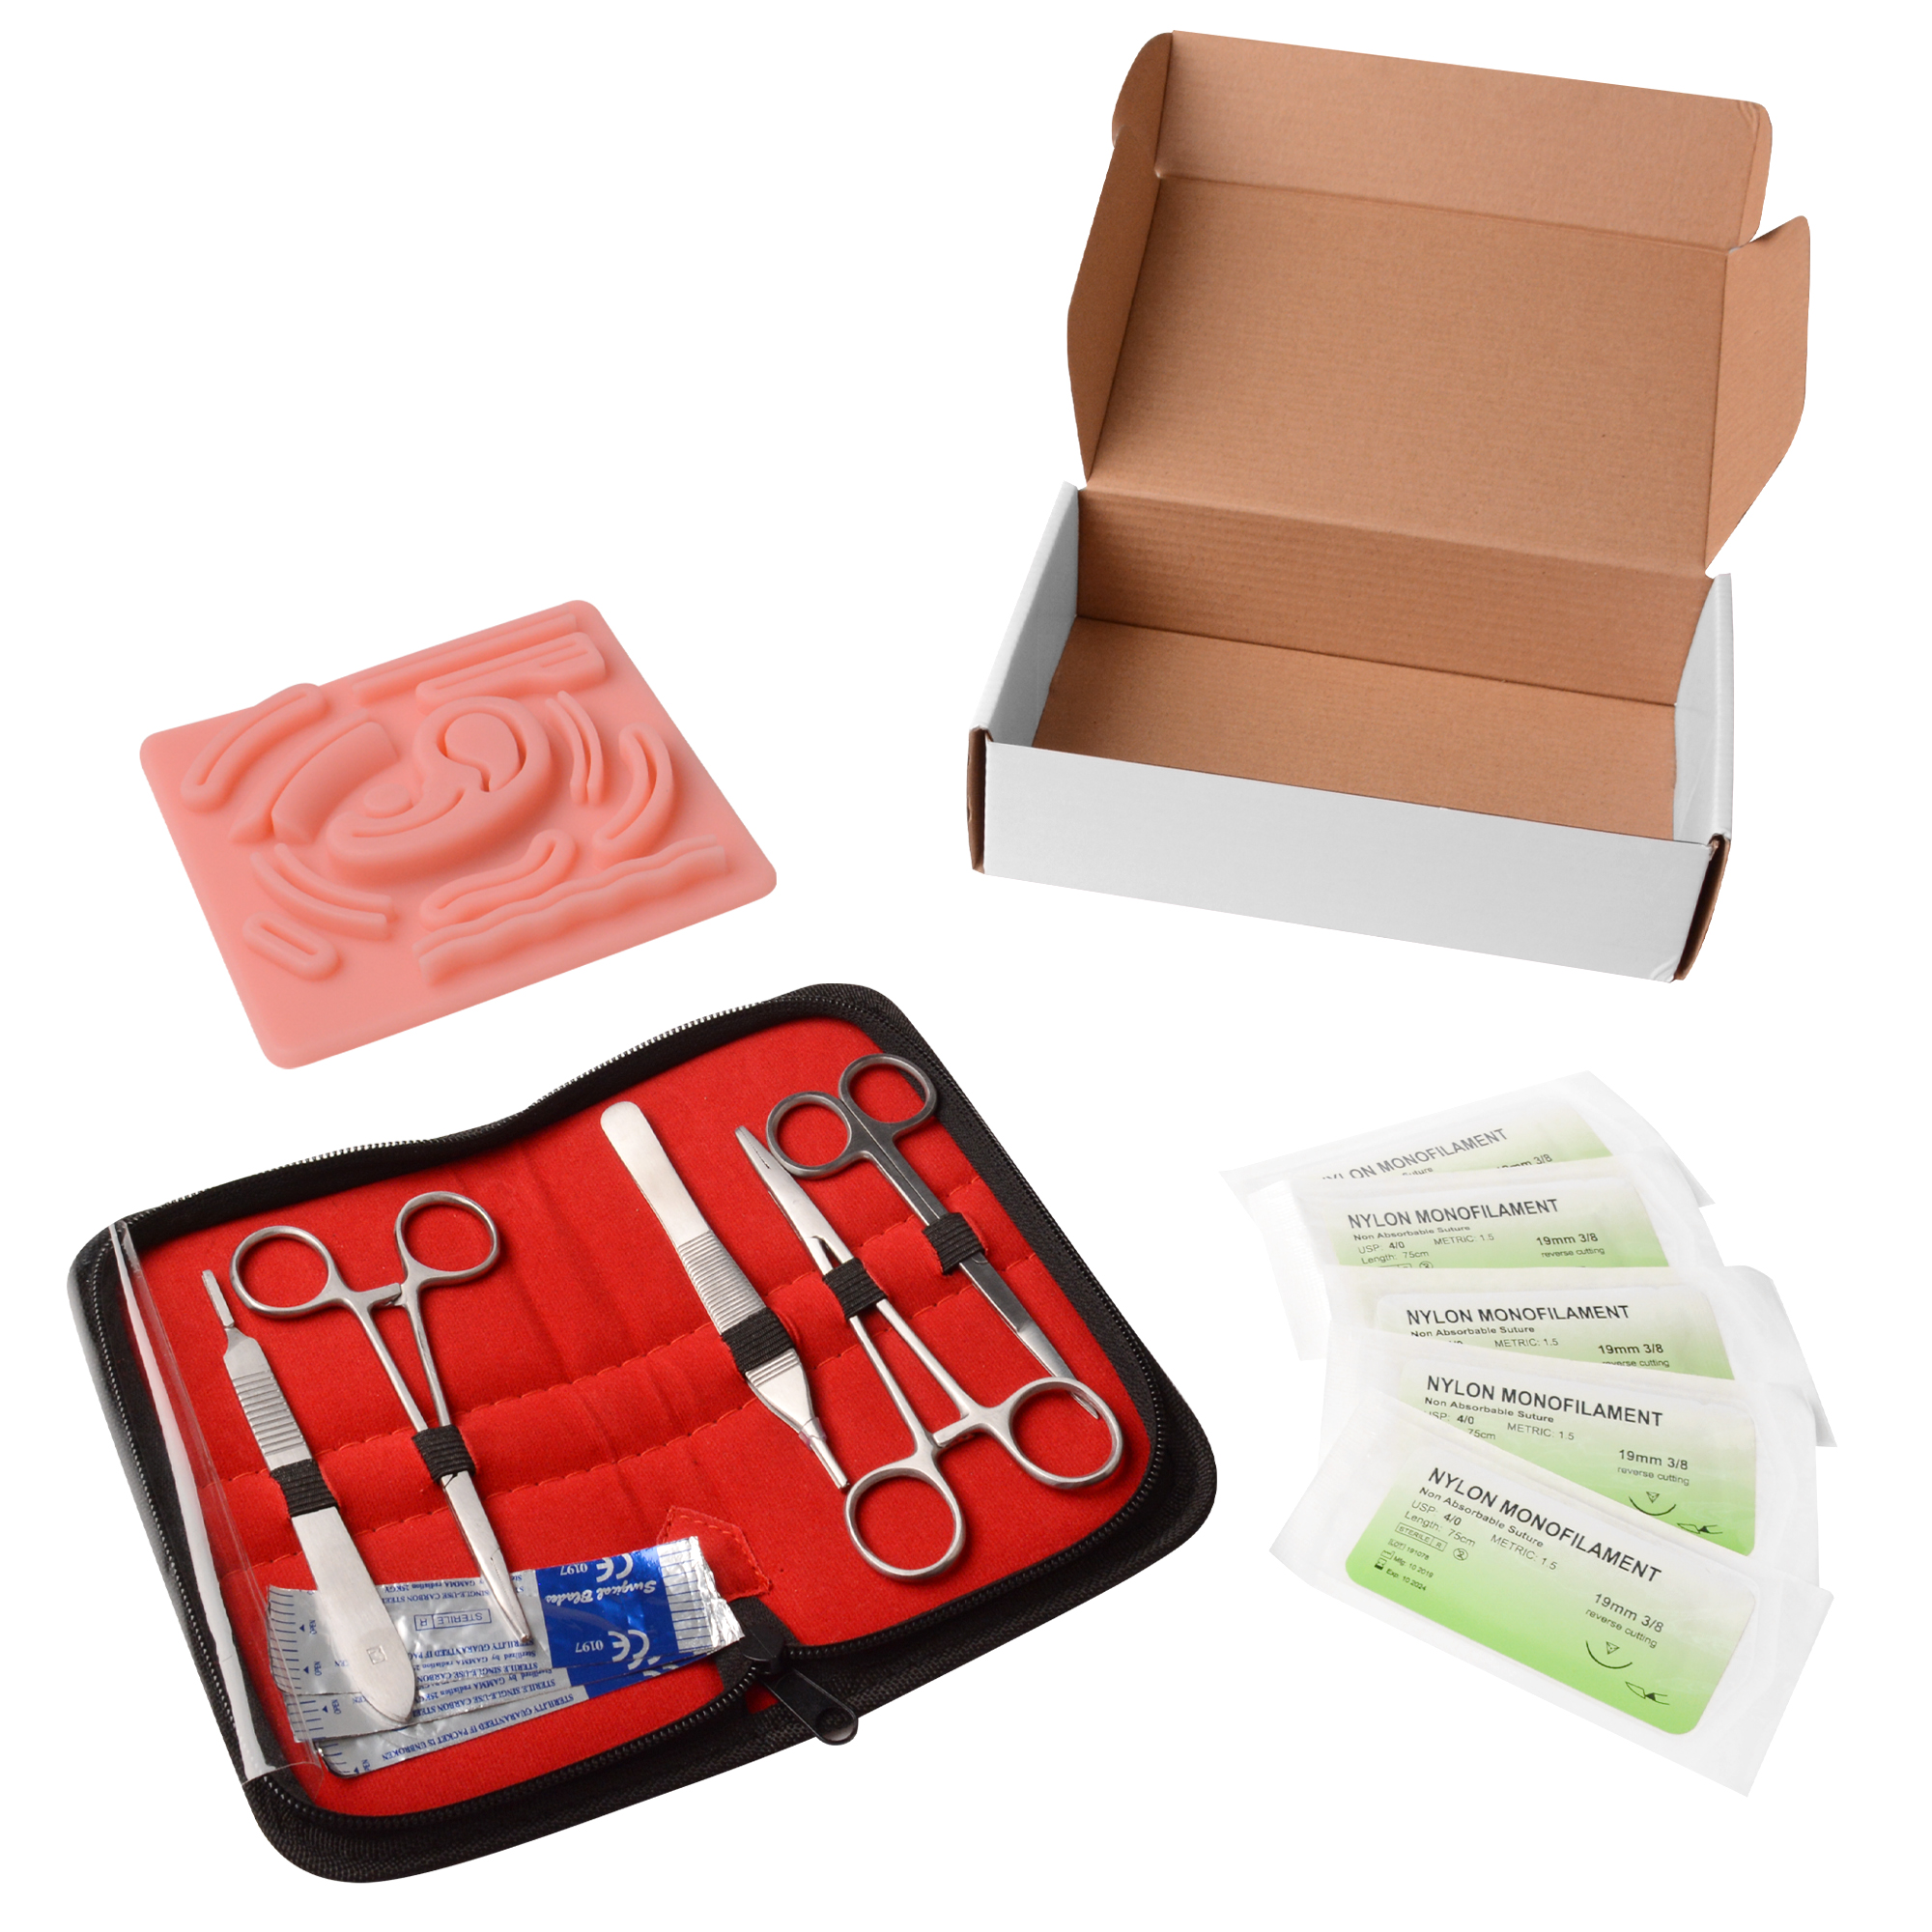 Surgical Laparoscope Suture Practice Kit for Medical Students Didactic Suture Training with Suture Practice Skin Pad